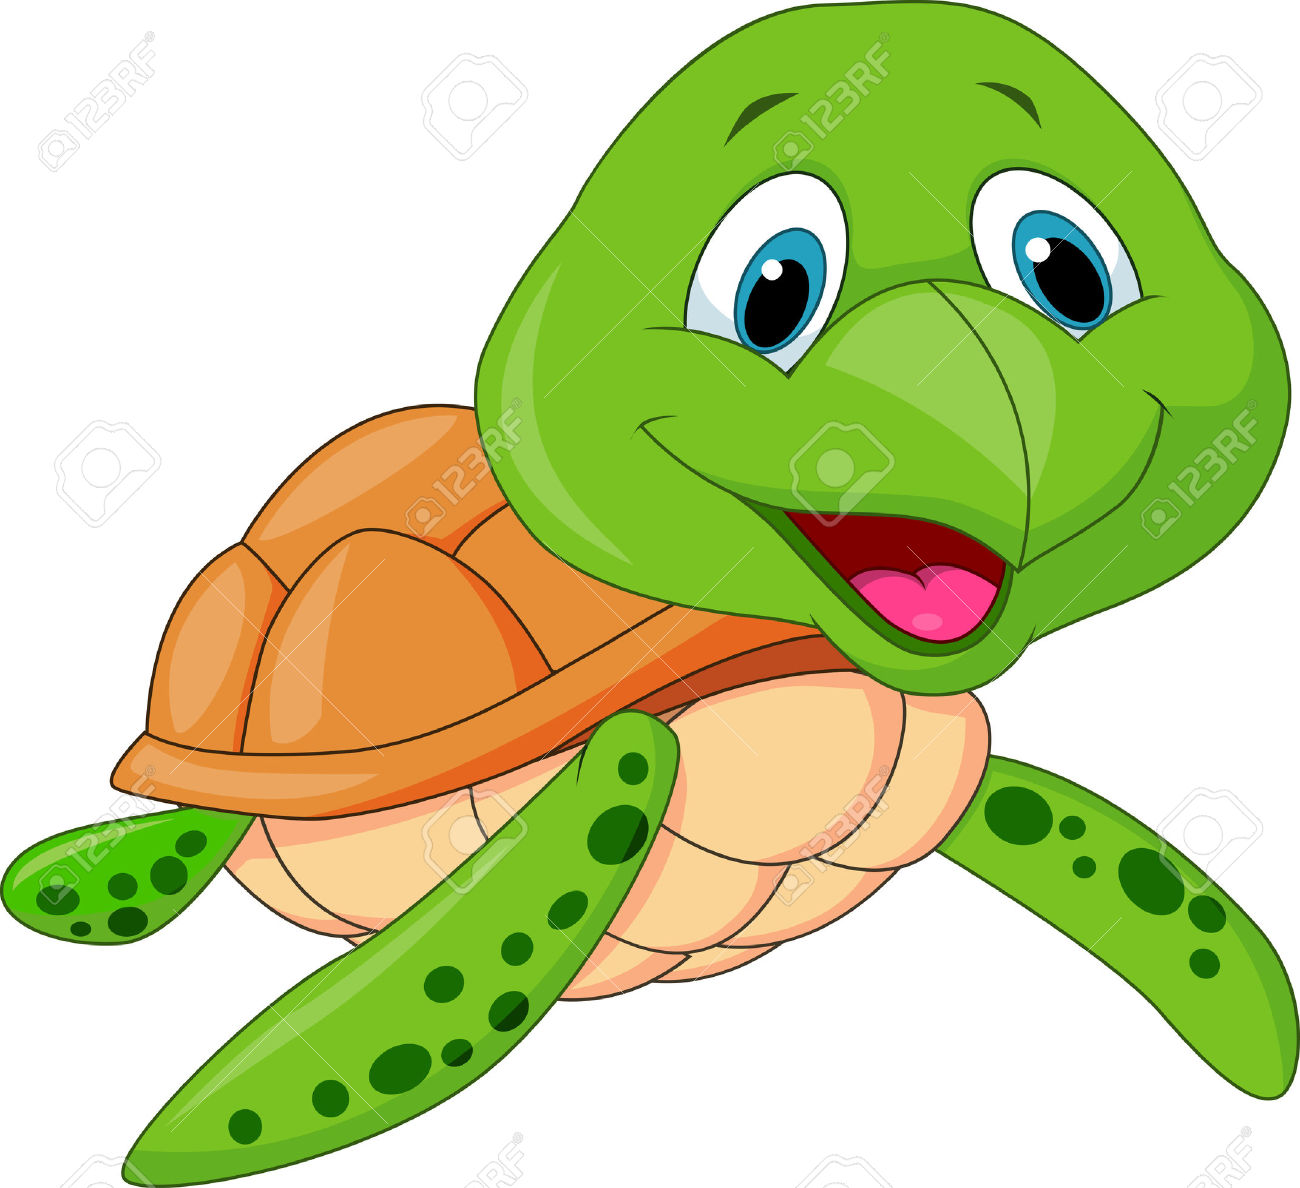 13,189 Turtle Stock Vector Illustration And Royalty Free Turtle.